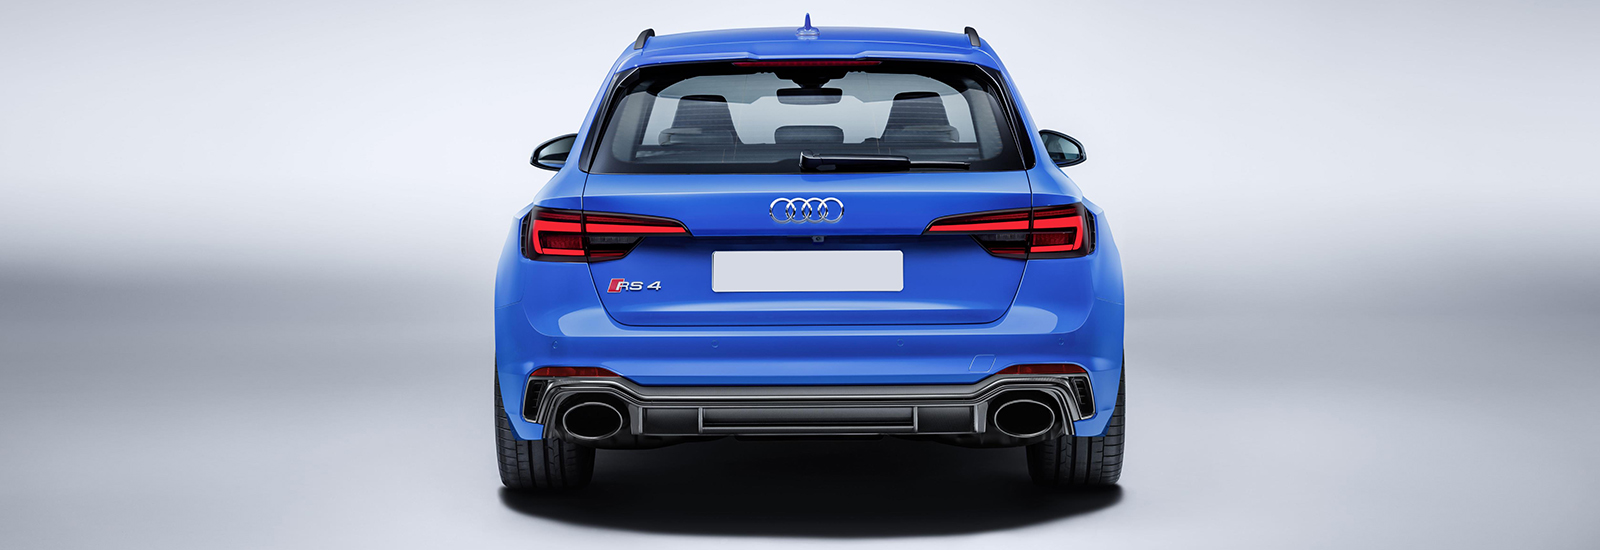 2018 audi rs4 avant. modren rs4 despite not being a major concern for many rs4 buyers the new model is far  more efficient u2013 achieving 321mpg compared to old modelu0027s 264mpg while  inside 2018 audi rs4 avant n